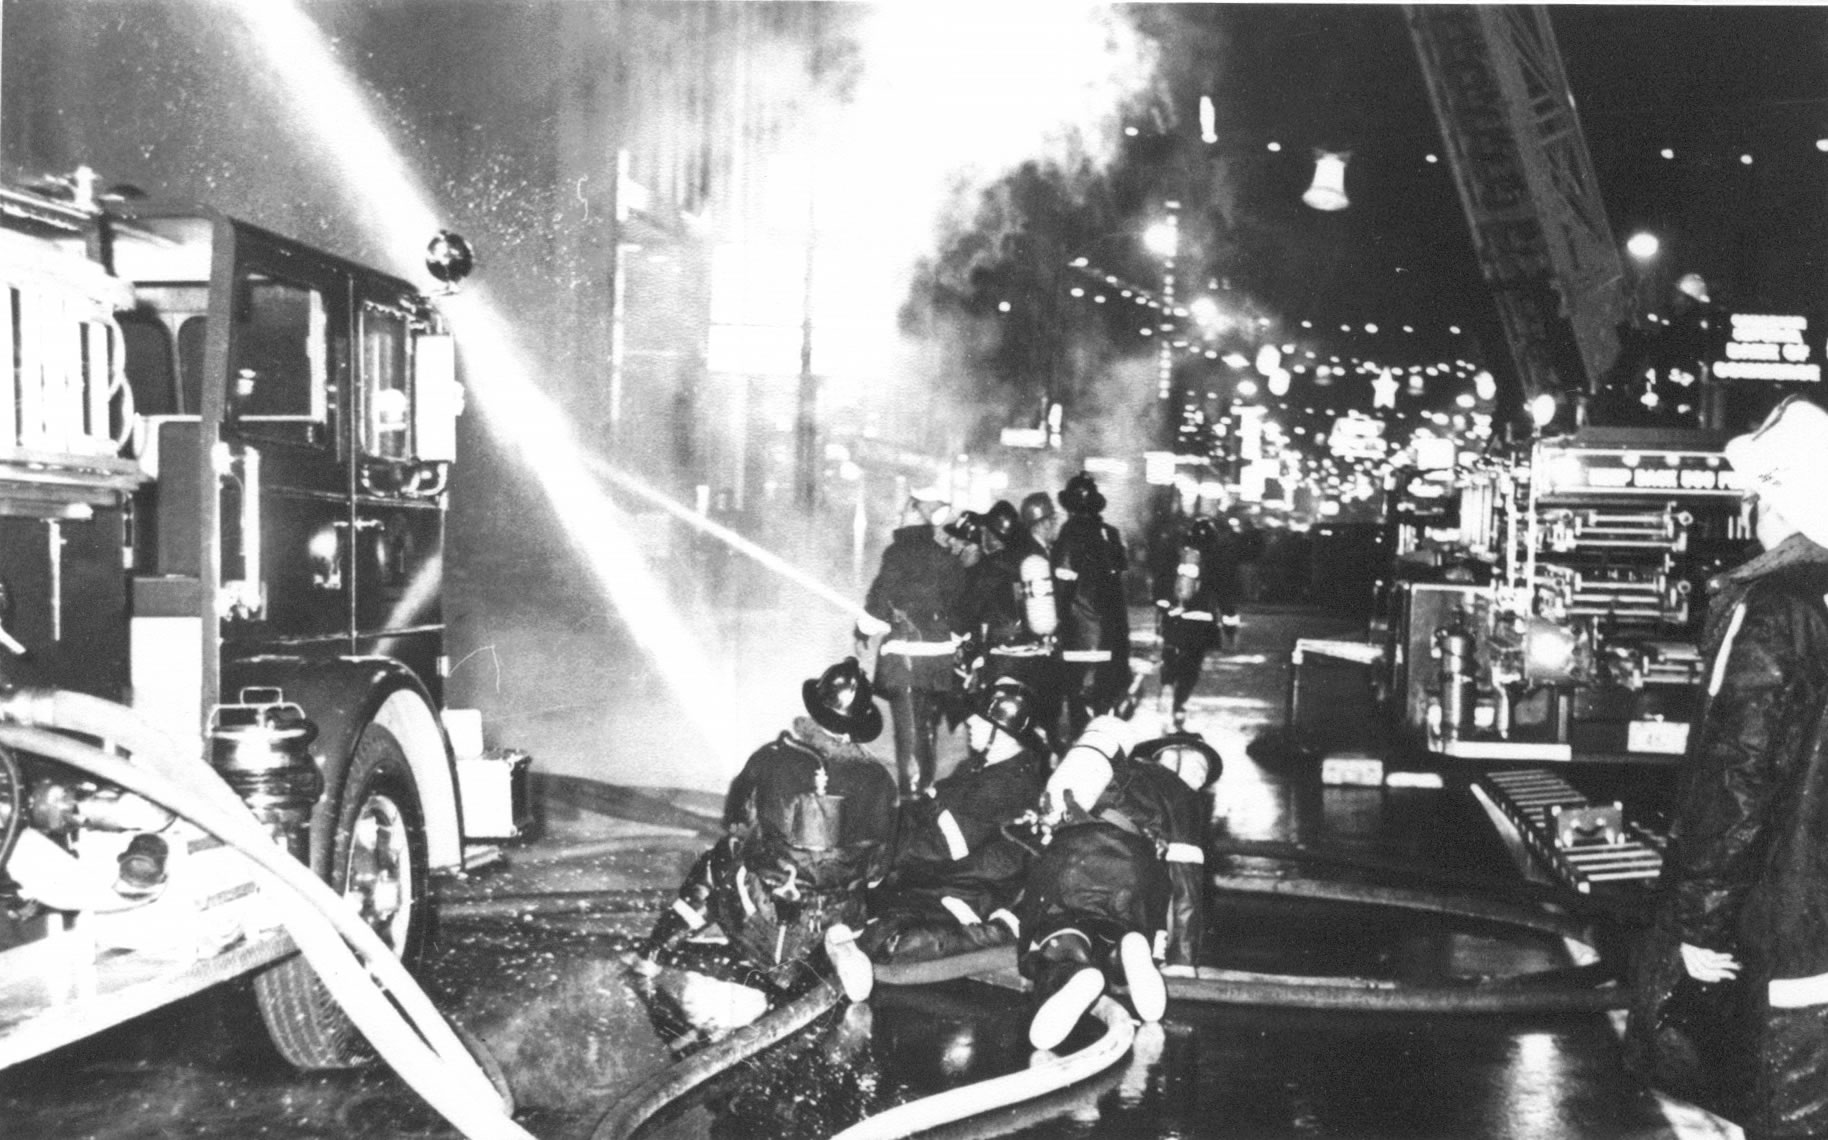 Firefighters manning large hose streams to extinguish a four story fire.